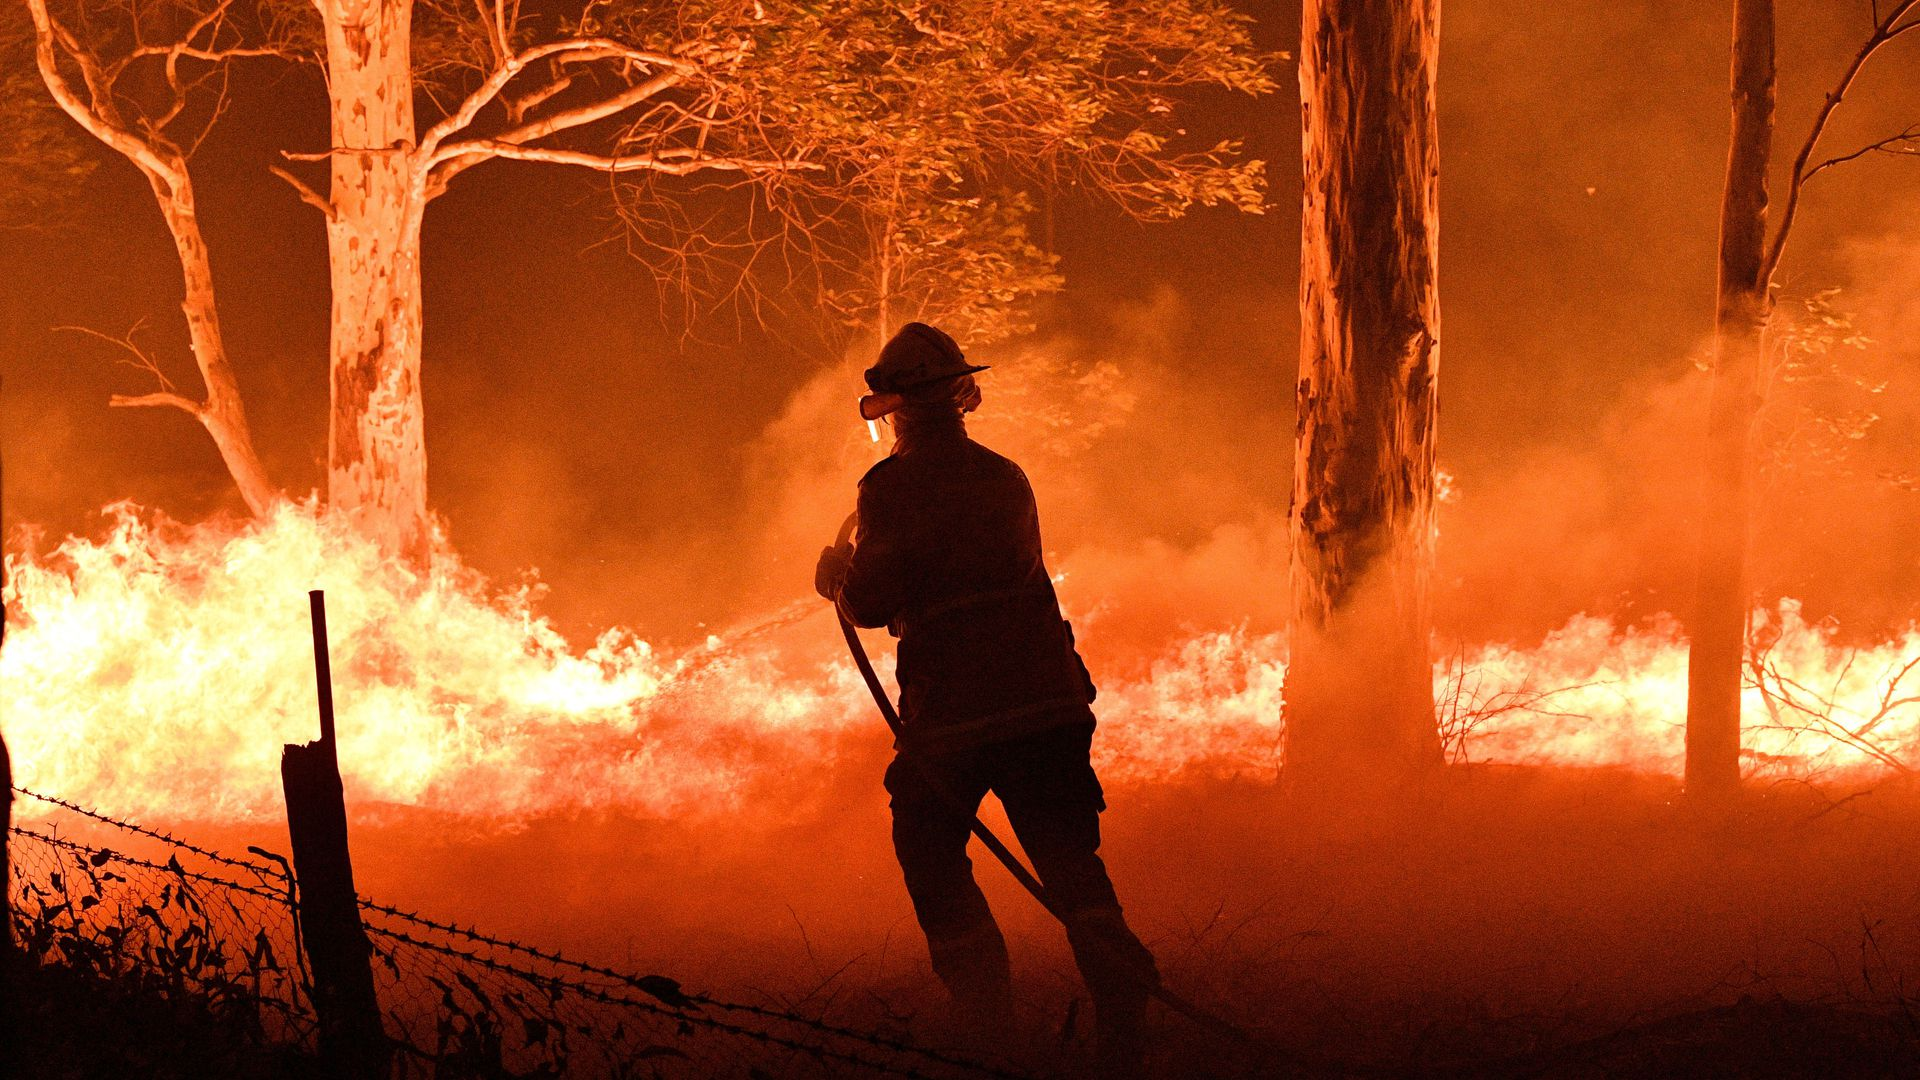 A firefighter hosing down trees and flying embers in an effort to secure nearby houses from bushfires near the town of Nowra in the Australian state of New South Wales.